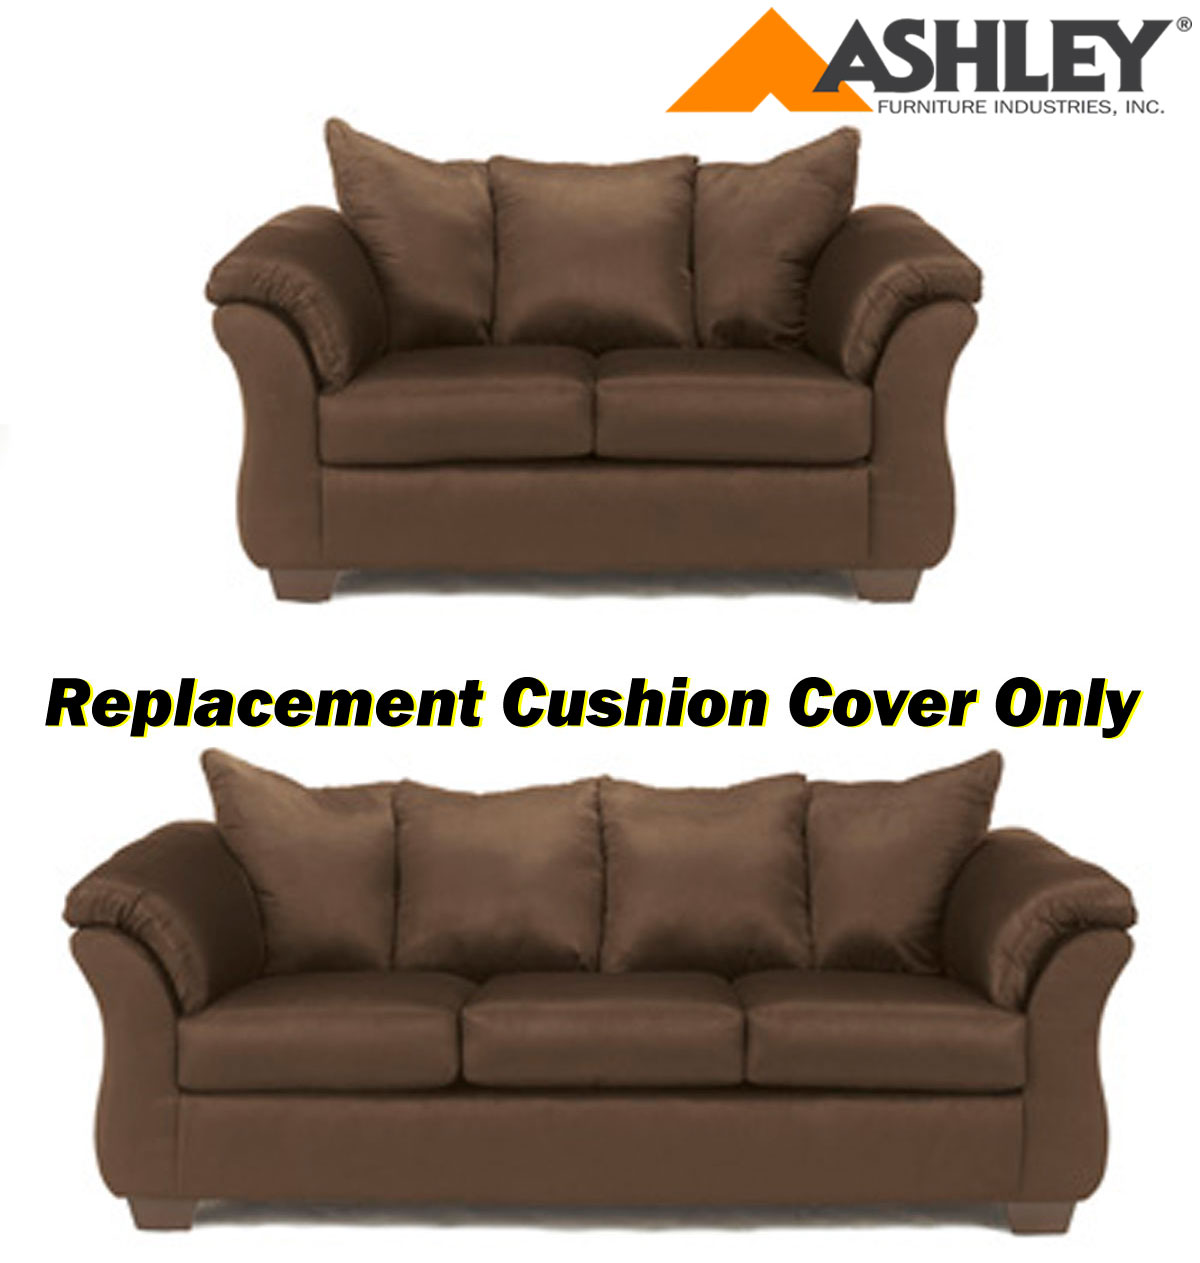 ashley darcy replacement cushion cover only 7500438 or 7500435 caf. Black Bedroom Furniture Sets. Home Design Ideas